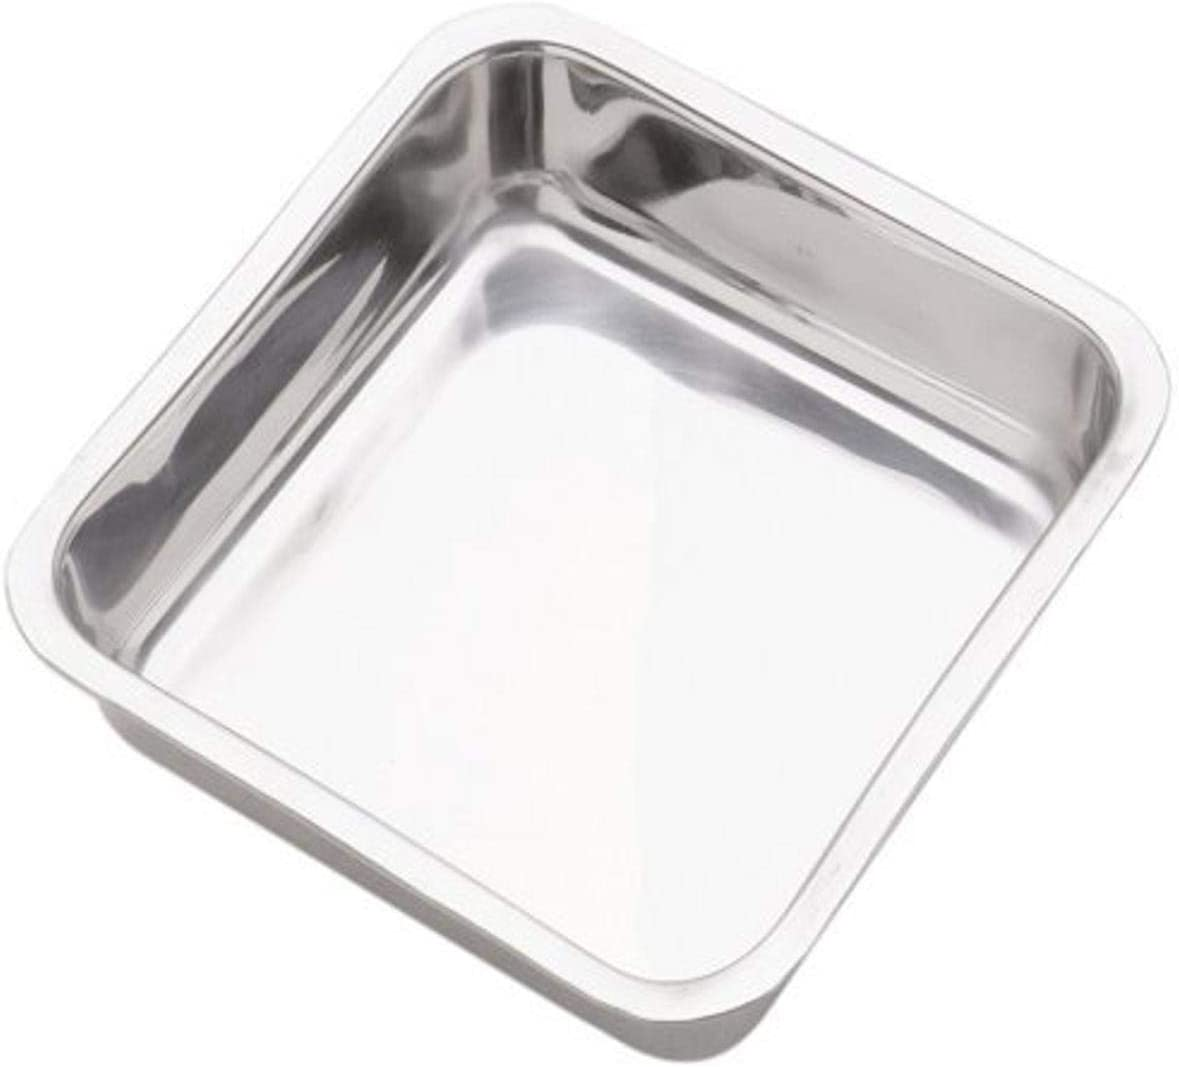 Norpro Very popular! 8 Inch Our shop most popular Stainless Square Pan Steel Cake